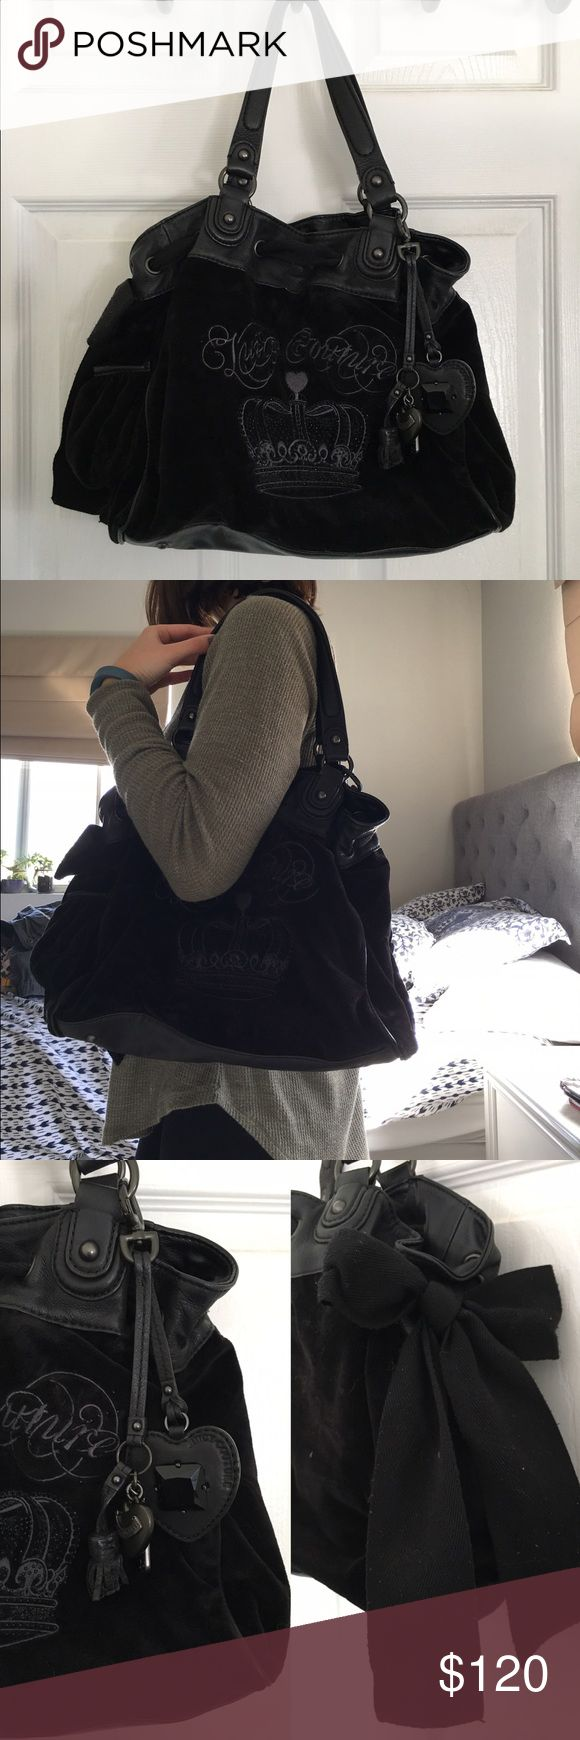 Juicy Couture Black Handbag Good condition Juicy handbag. Juicy couture logo on the front with the crown logo underneath. Charms shown in third photo on the front and black bow tied on the side of the bag.  Royal blue interior as photographed. The bag has a magnet clasp to shut the purse. Leather straps as well as leather on the bottom of the purse. ❌no low ball offers❌ ✨I can also do  ♏️ercari or e🅱️ay for cheaper prices, LET ME KNOW IF YOU'RE INTERESTED ✨ Juicy Couture Bags